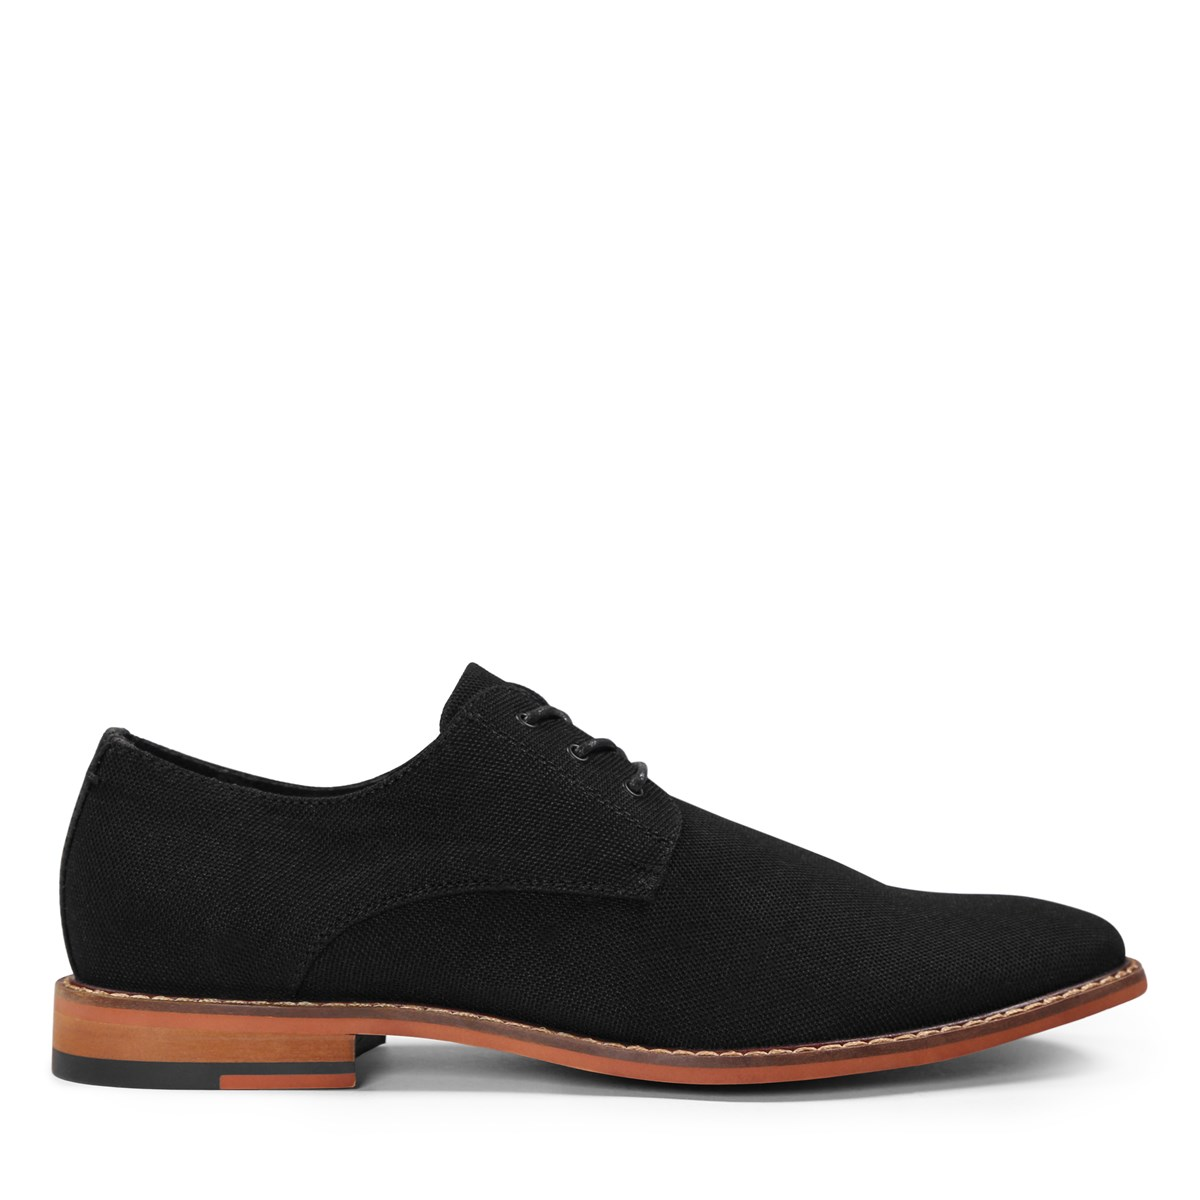 Men's Alberto Nylon Lace-Up Shoes in Black